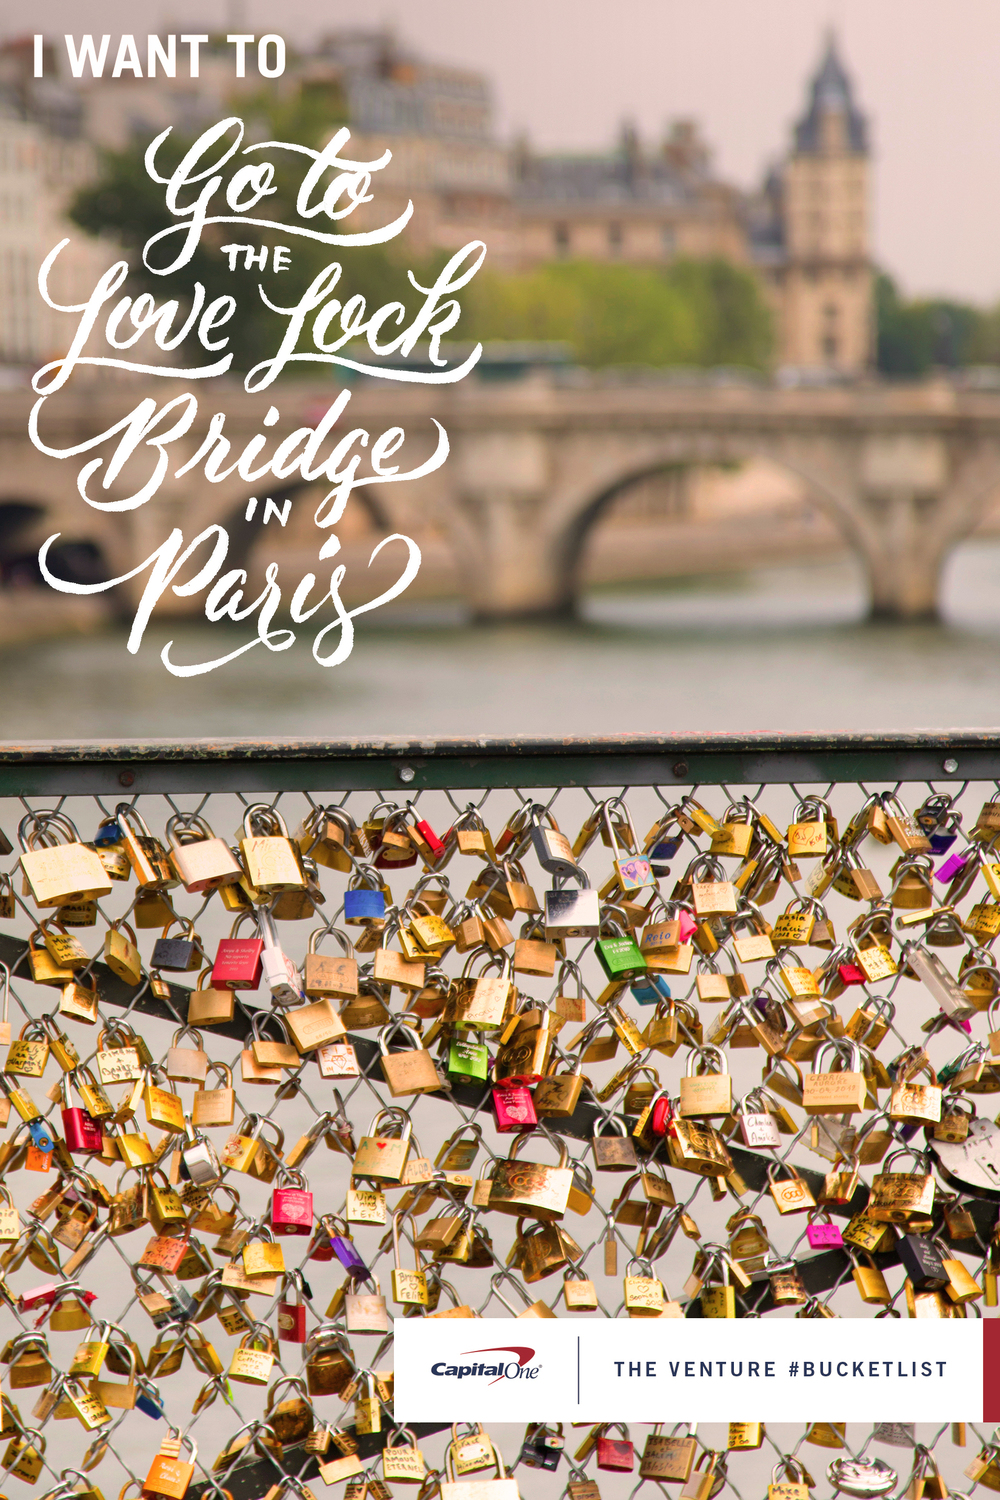 http://venture.tumblr.com/post/55532169200/bucketlist-item-no-14-the-love-lock-bridge-in